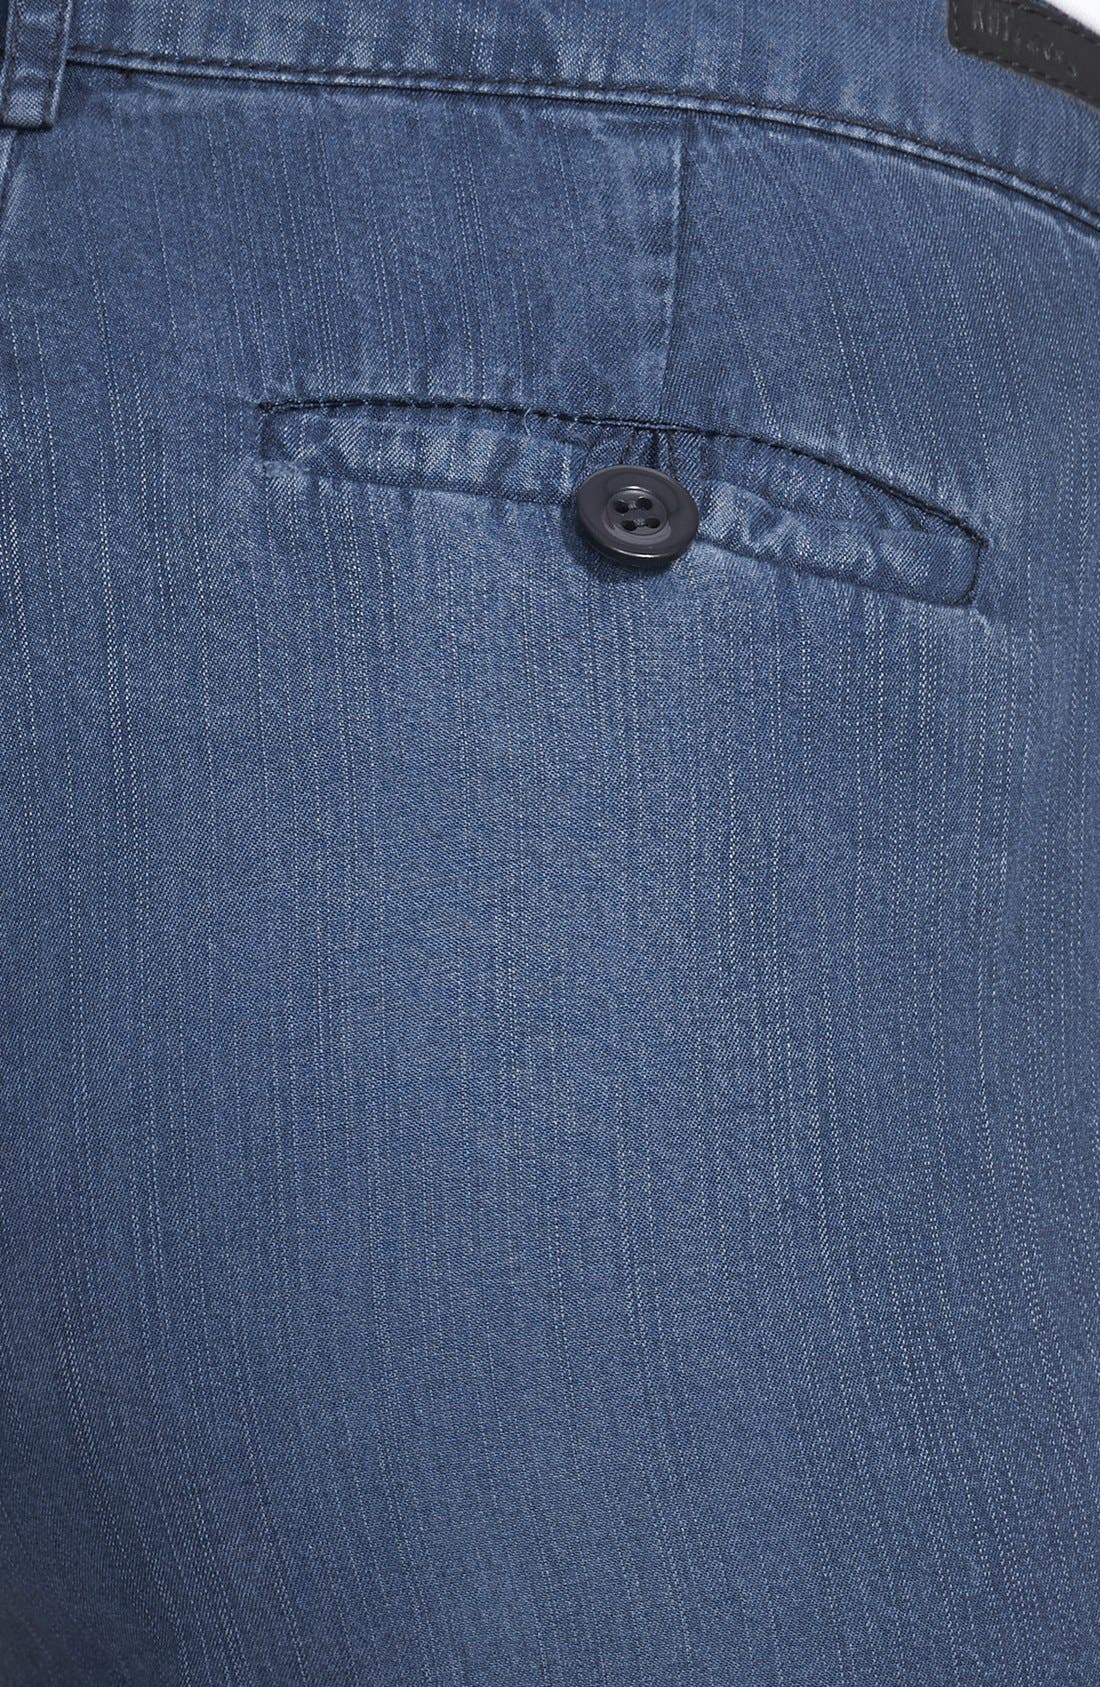 Alternate Image 3  - KUT from the Kloth Relaxed Crop Trouser Jeans